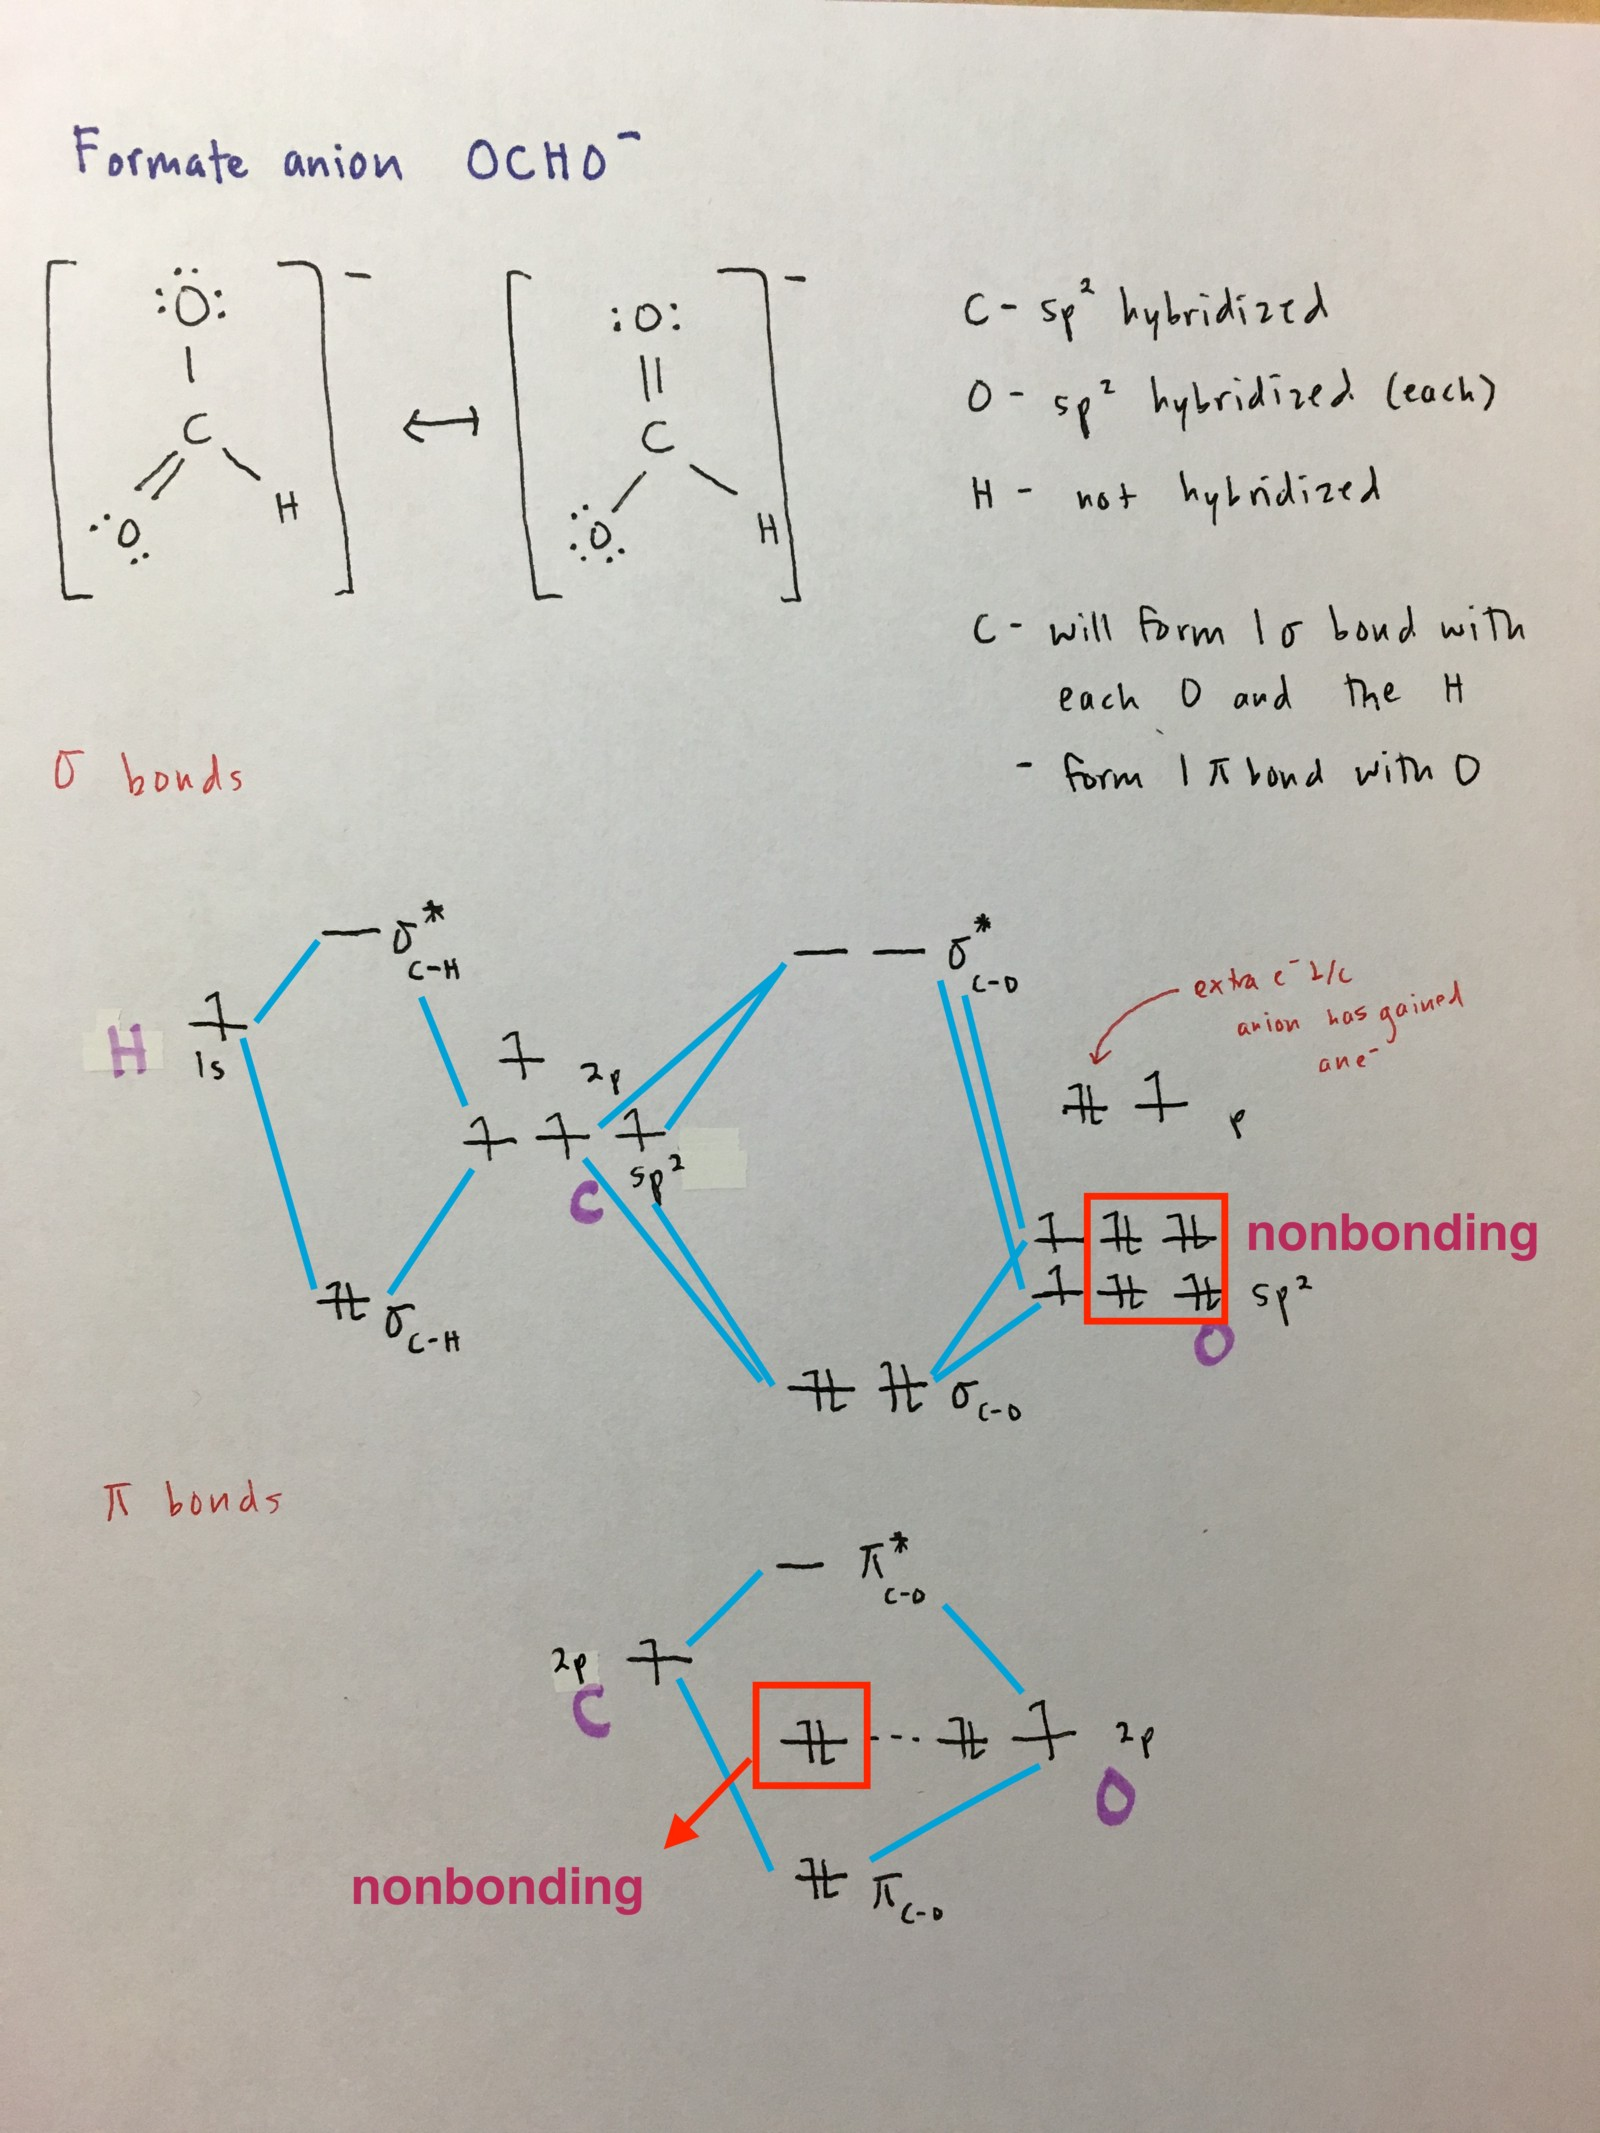 Molecular Orbital Diagrams Simplified U2013 Megan Lim U2013 Medium Manual Guide